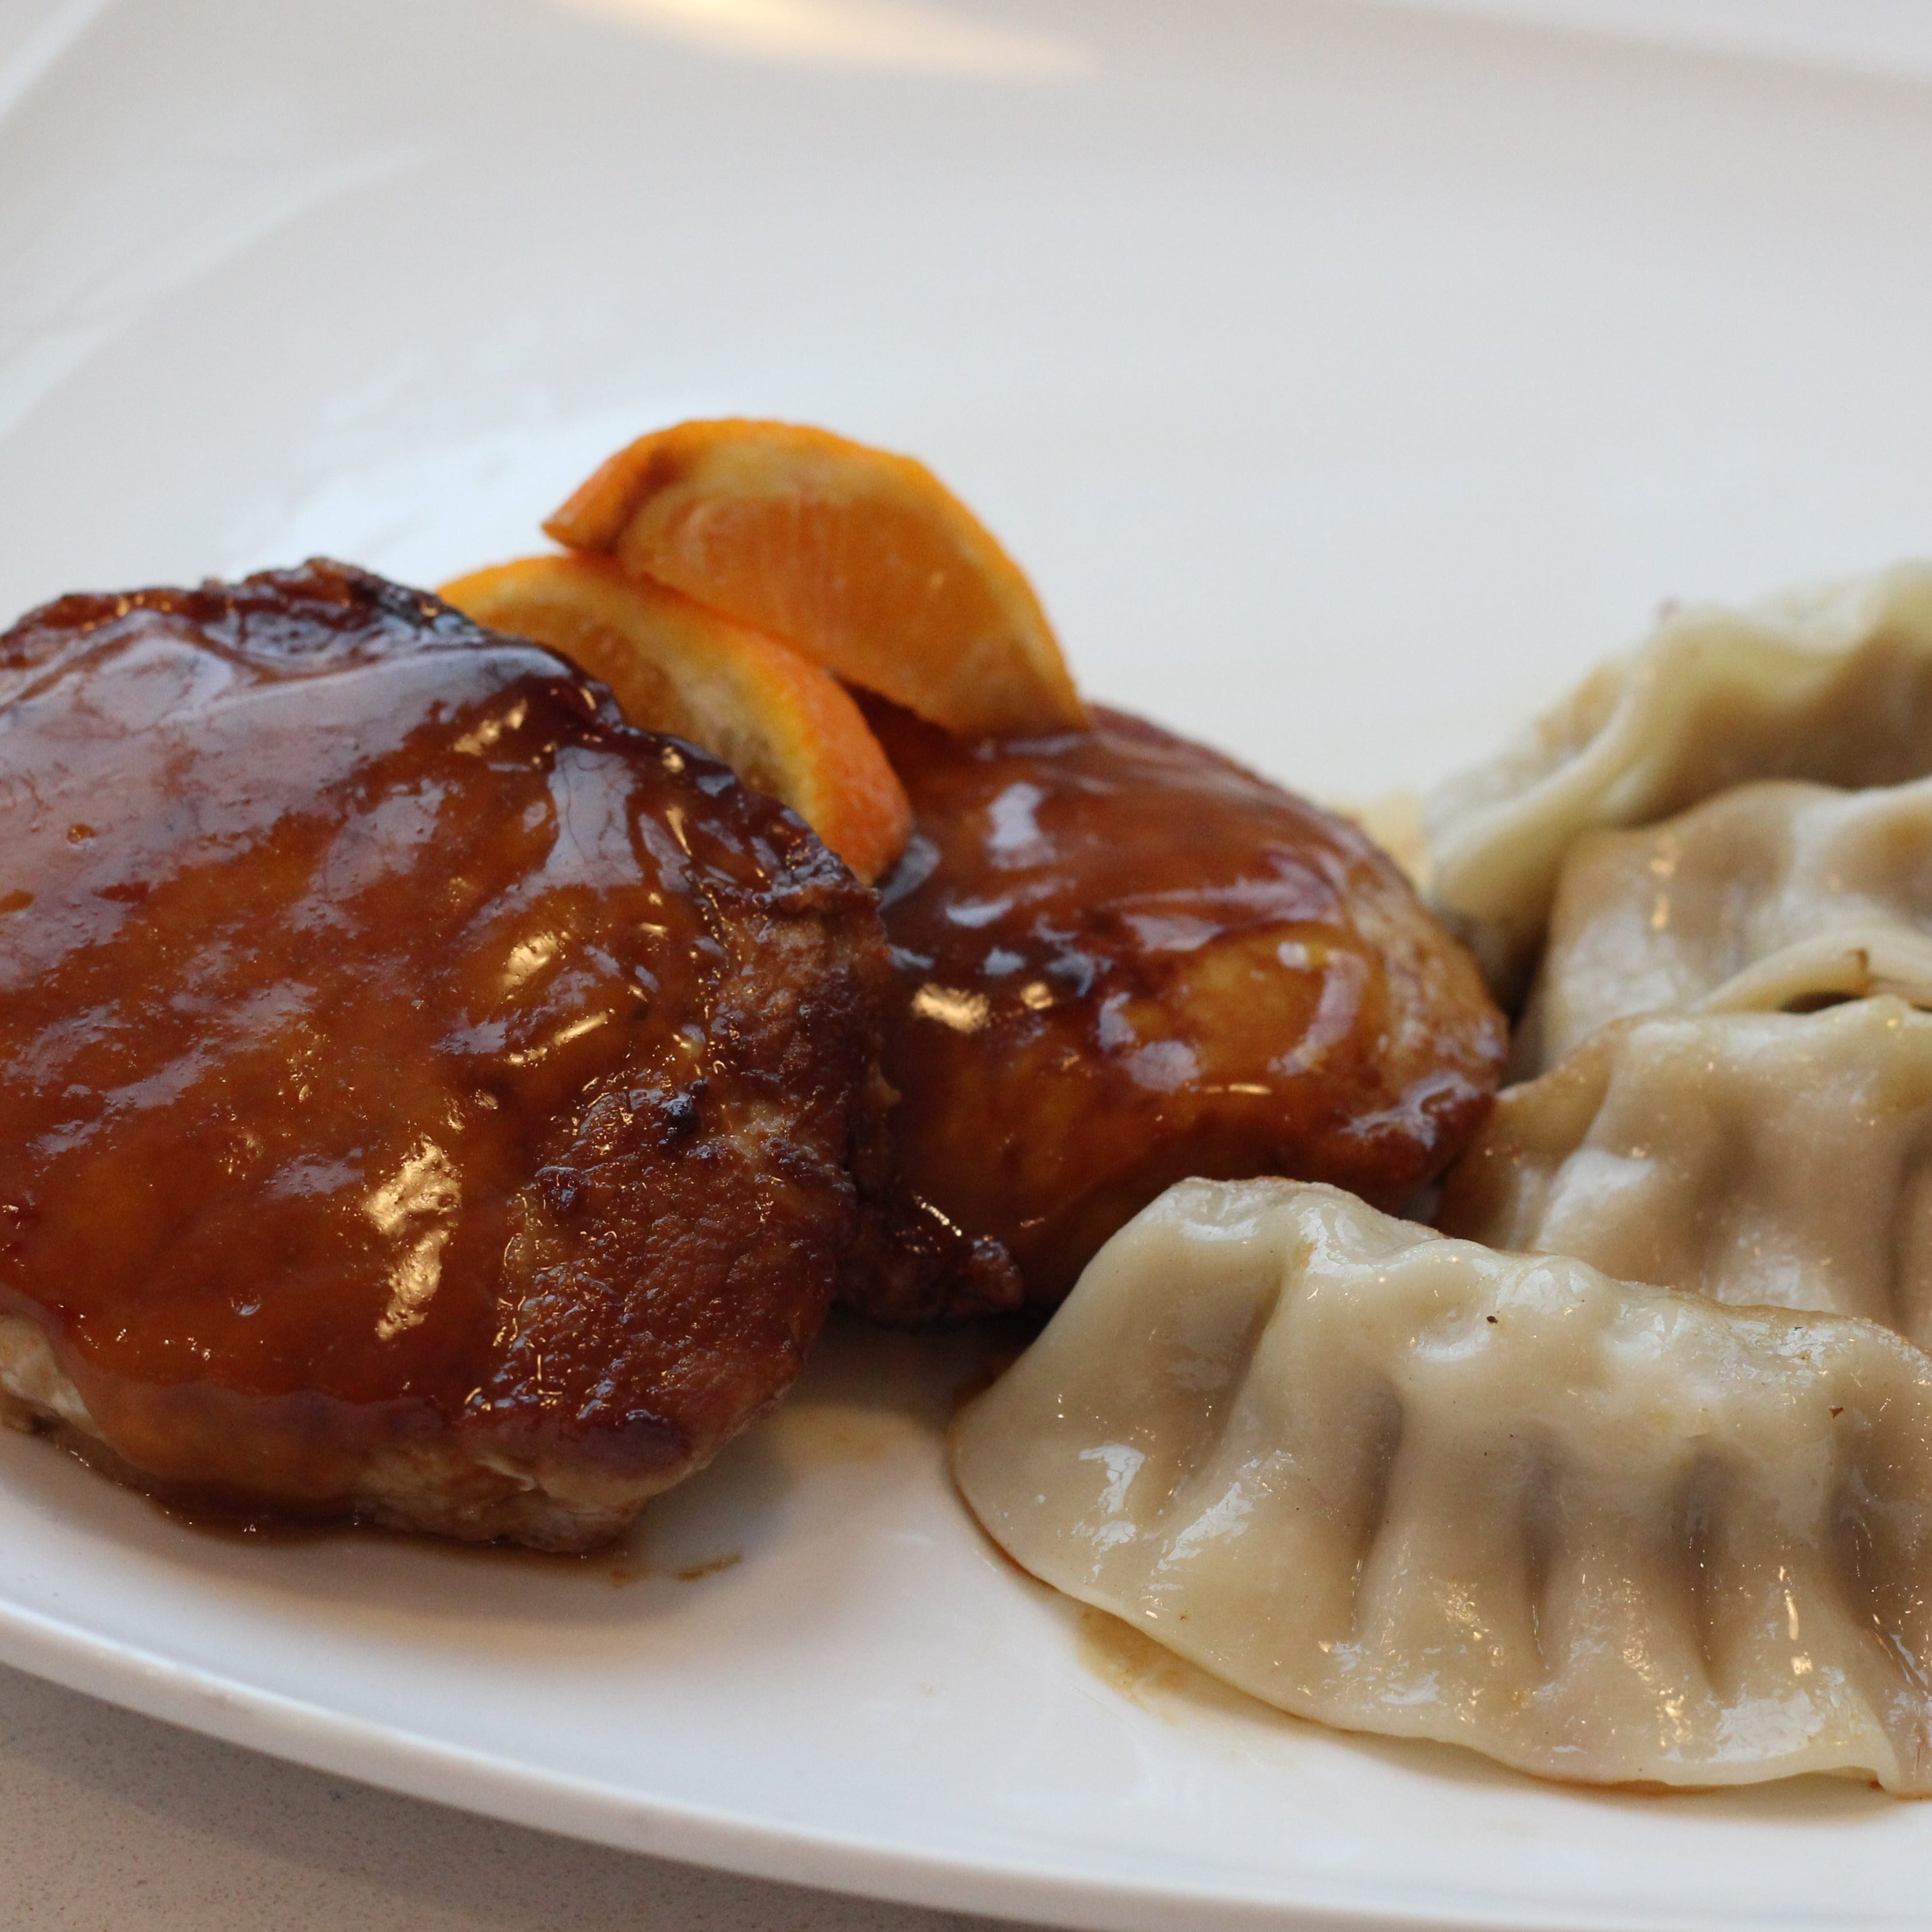 Orange-Ginger Pork Chops with Dumplings